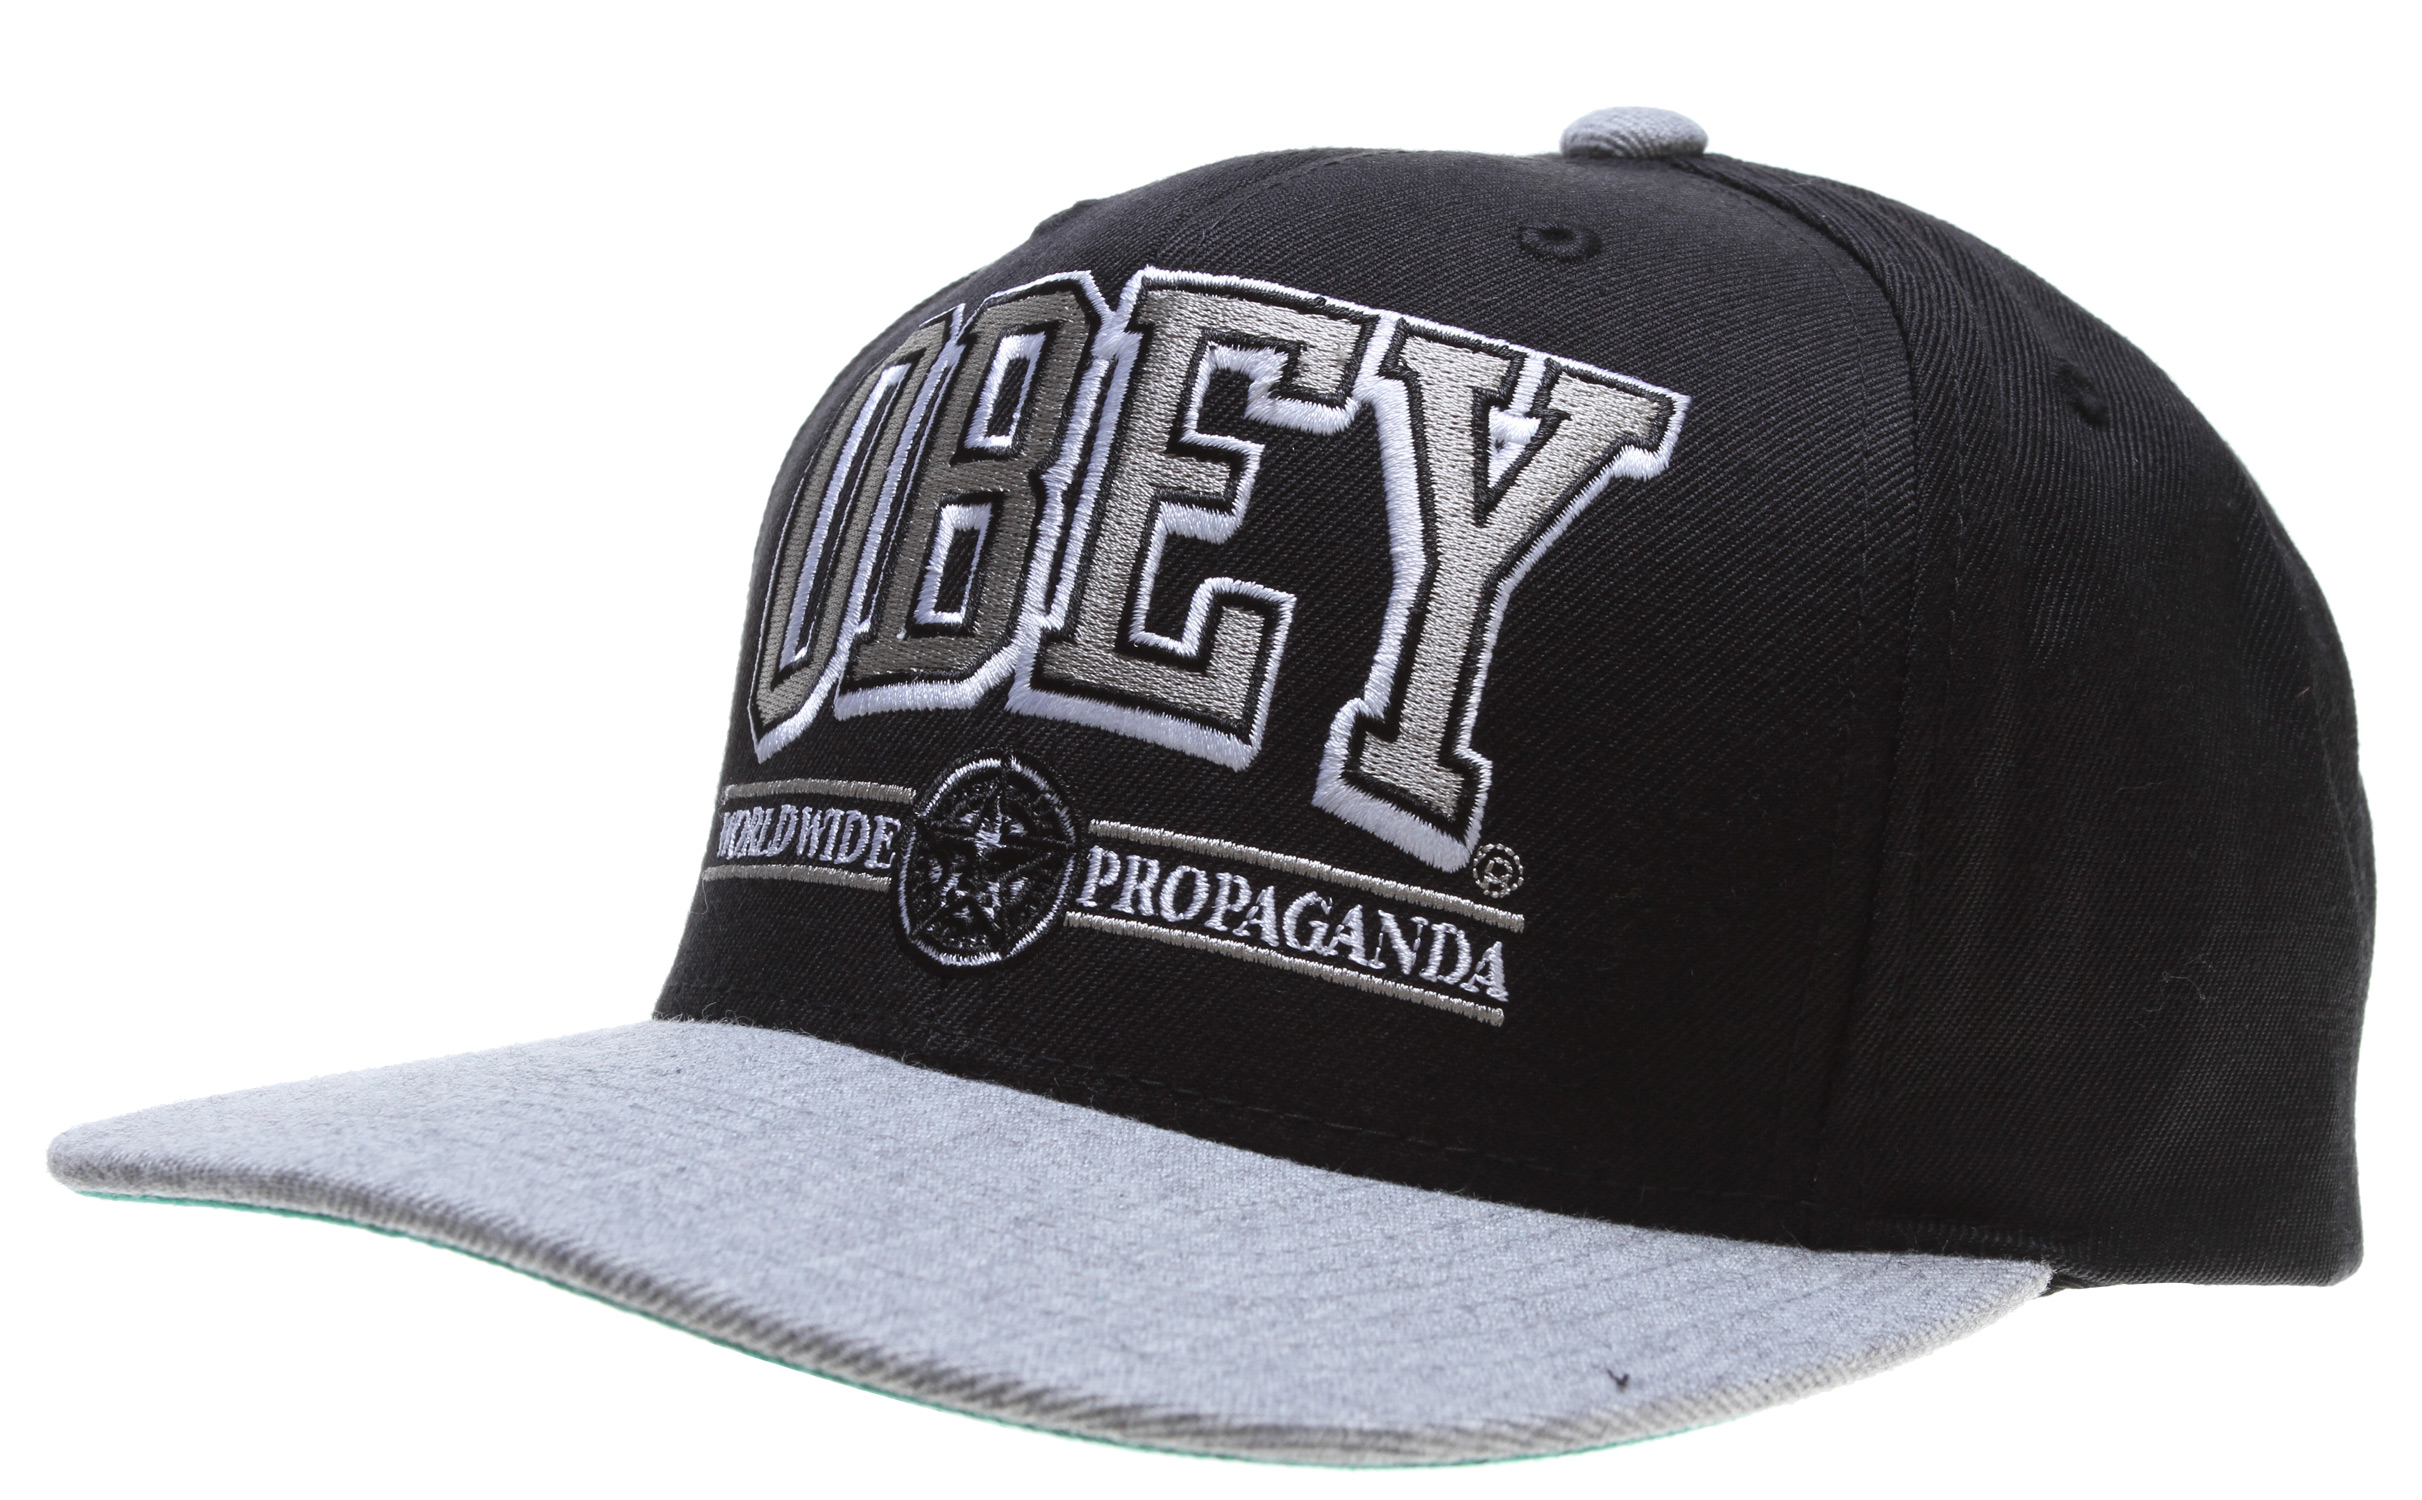 Key Features of the Obey Athletics Snapback Cap: Twill snapback with applique and embroidery 80% acrylic/20% wool - $16.95